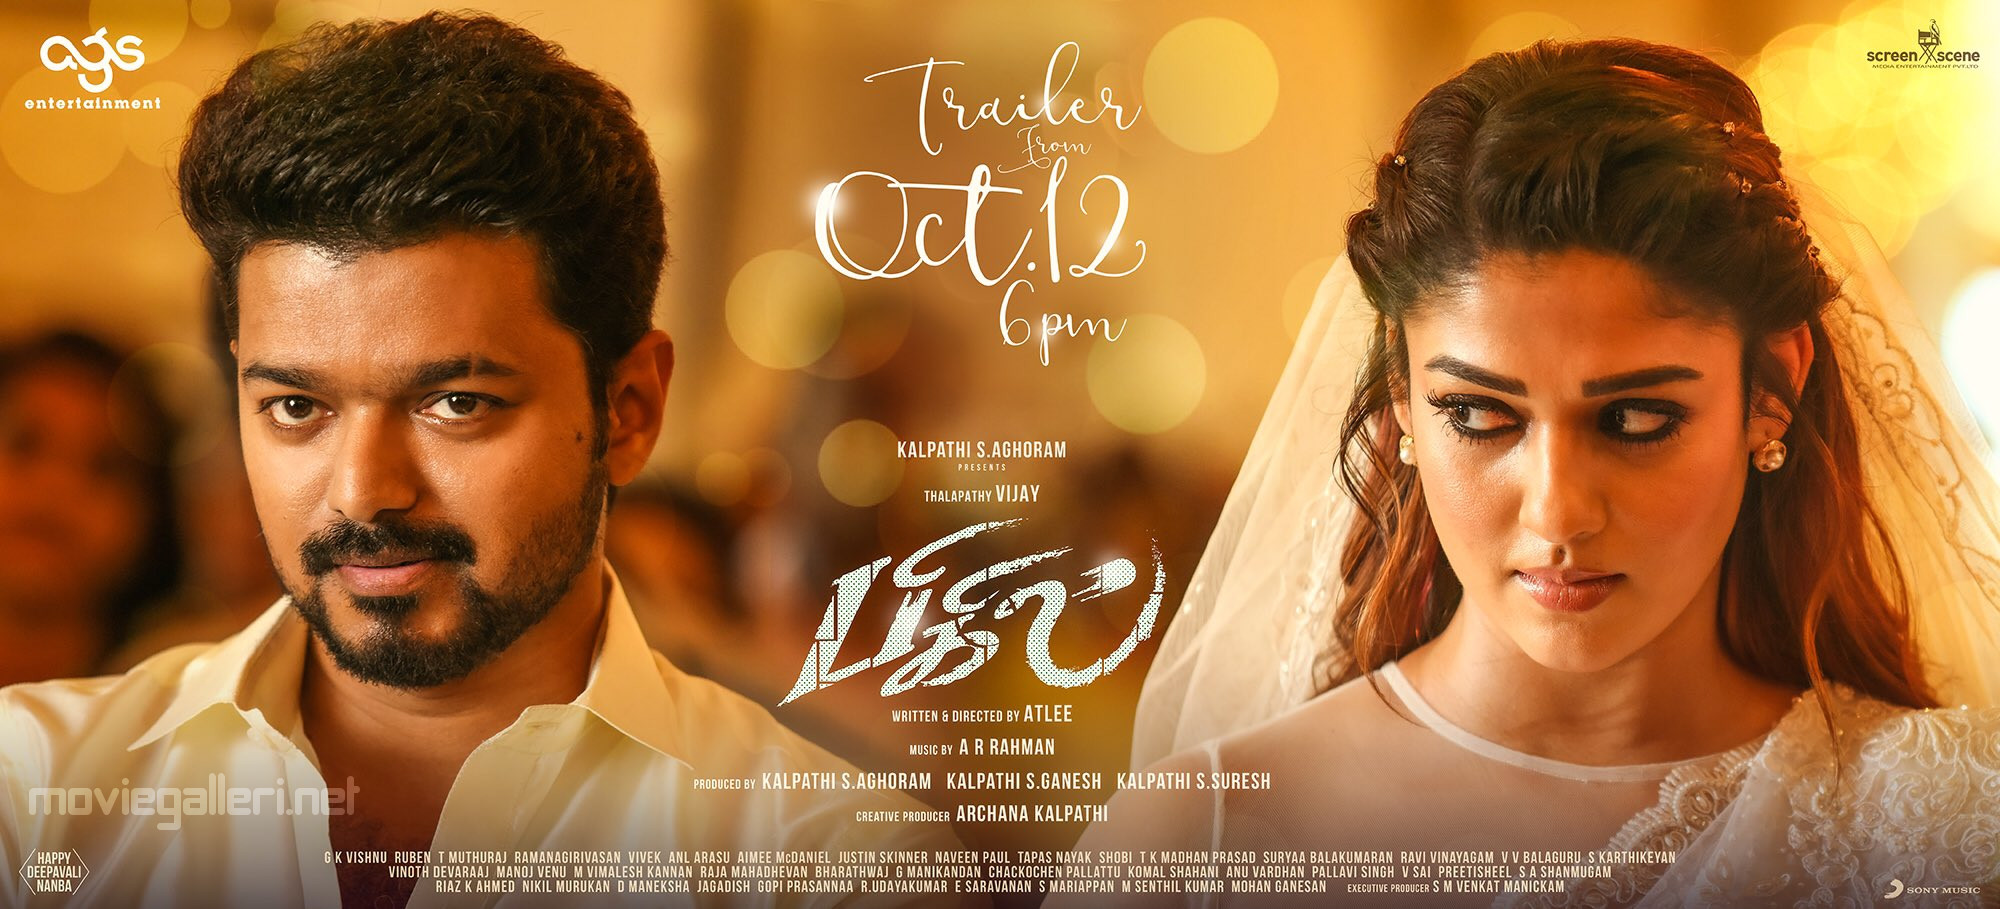 Vijay Nayanthara Bigil Movie Trailer Release from Oct 12th Poster HD